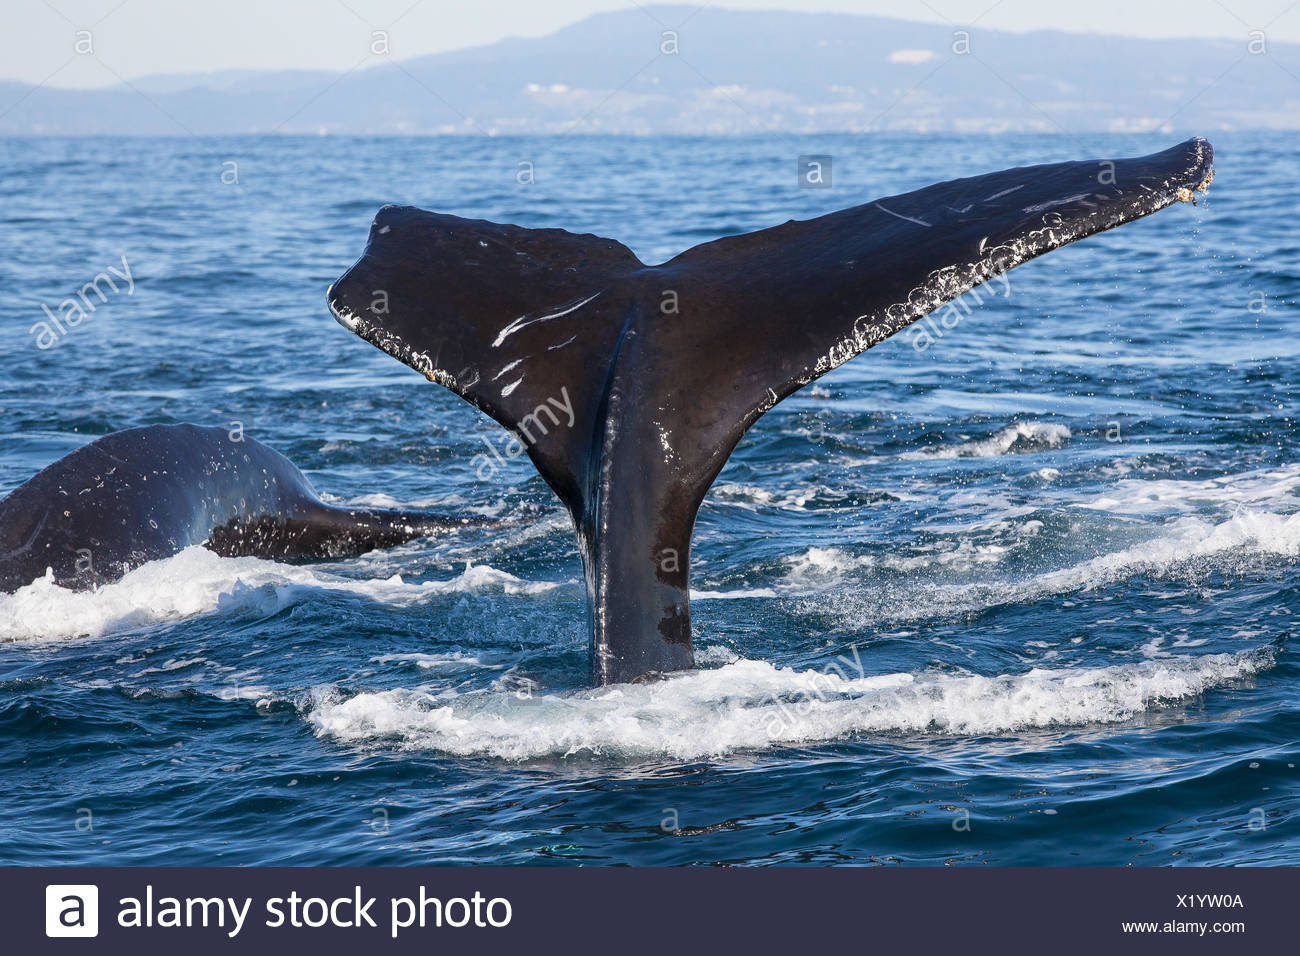 Humpback whales, Megaptera novaeangliae, diving for anchovies. - Stock Image